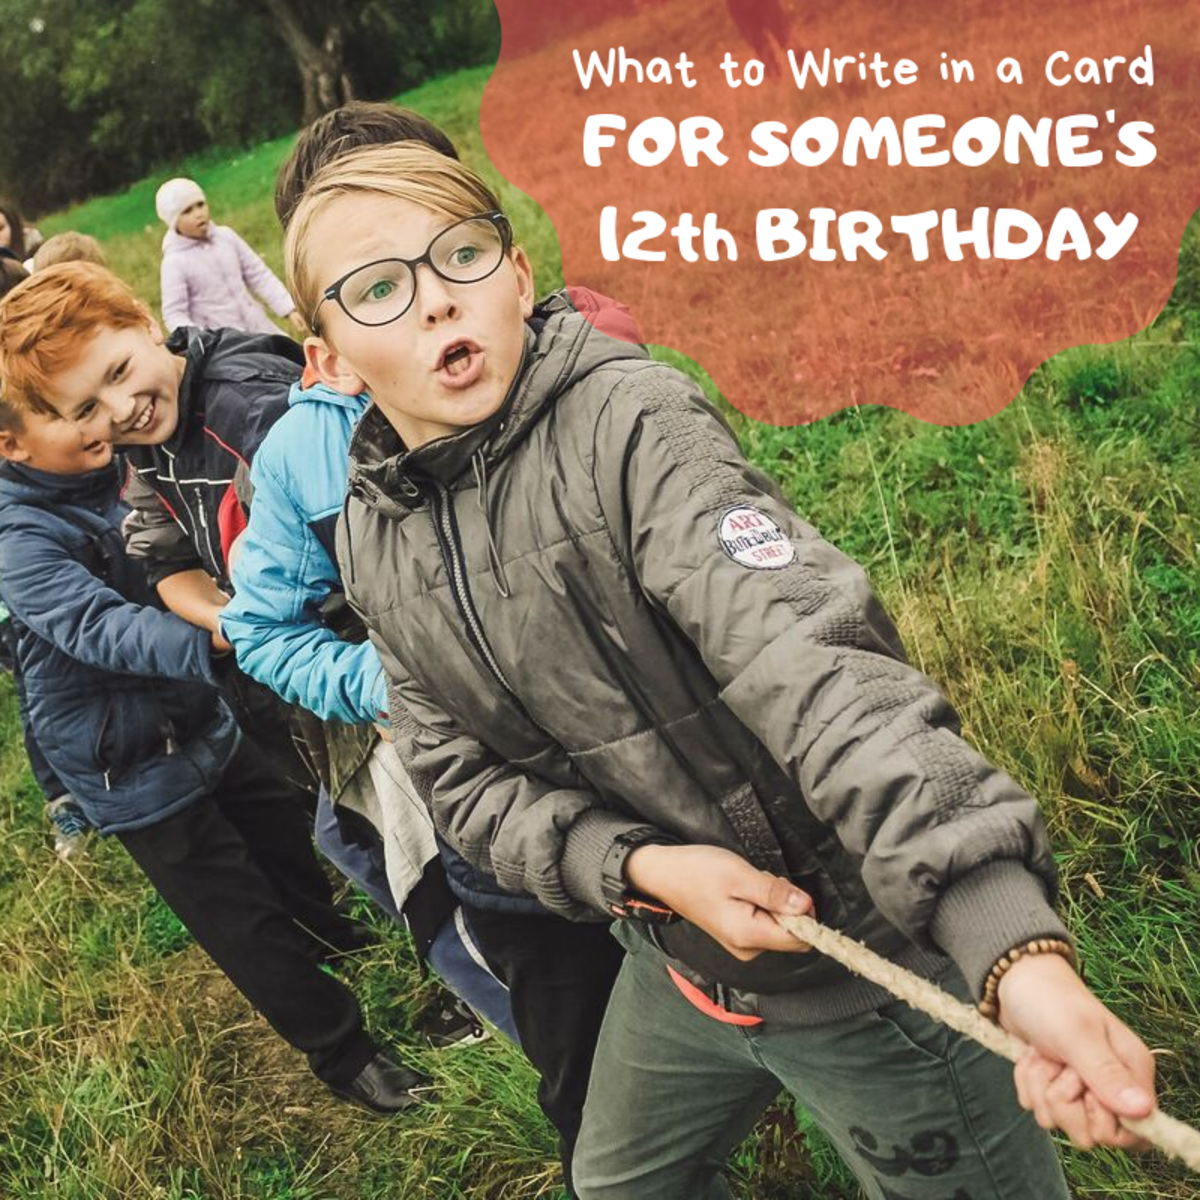 What to Write in a 12-Year-Old's Birthday Card